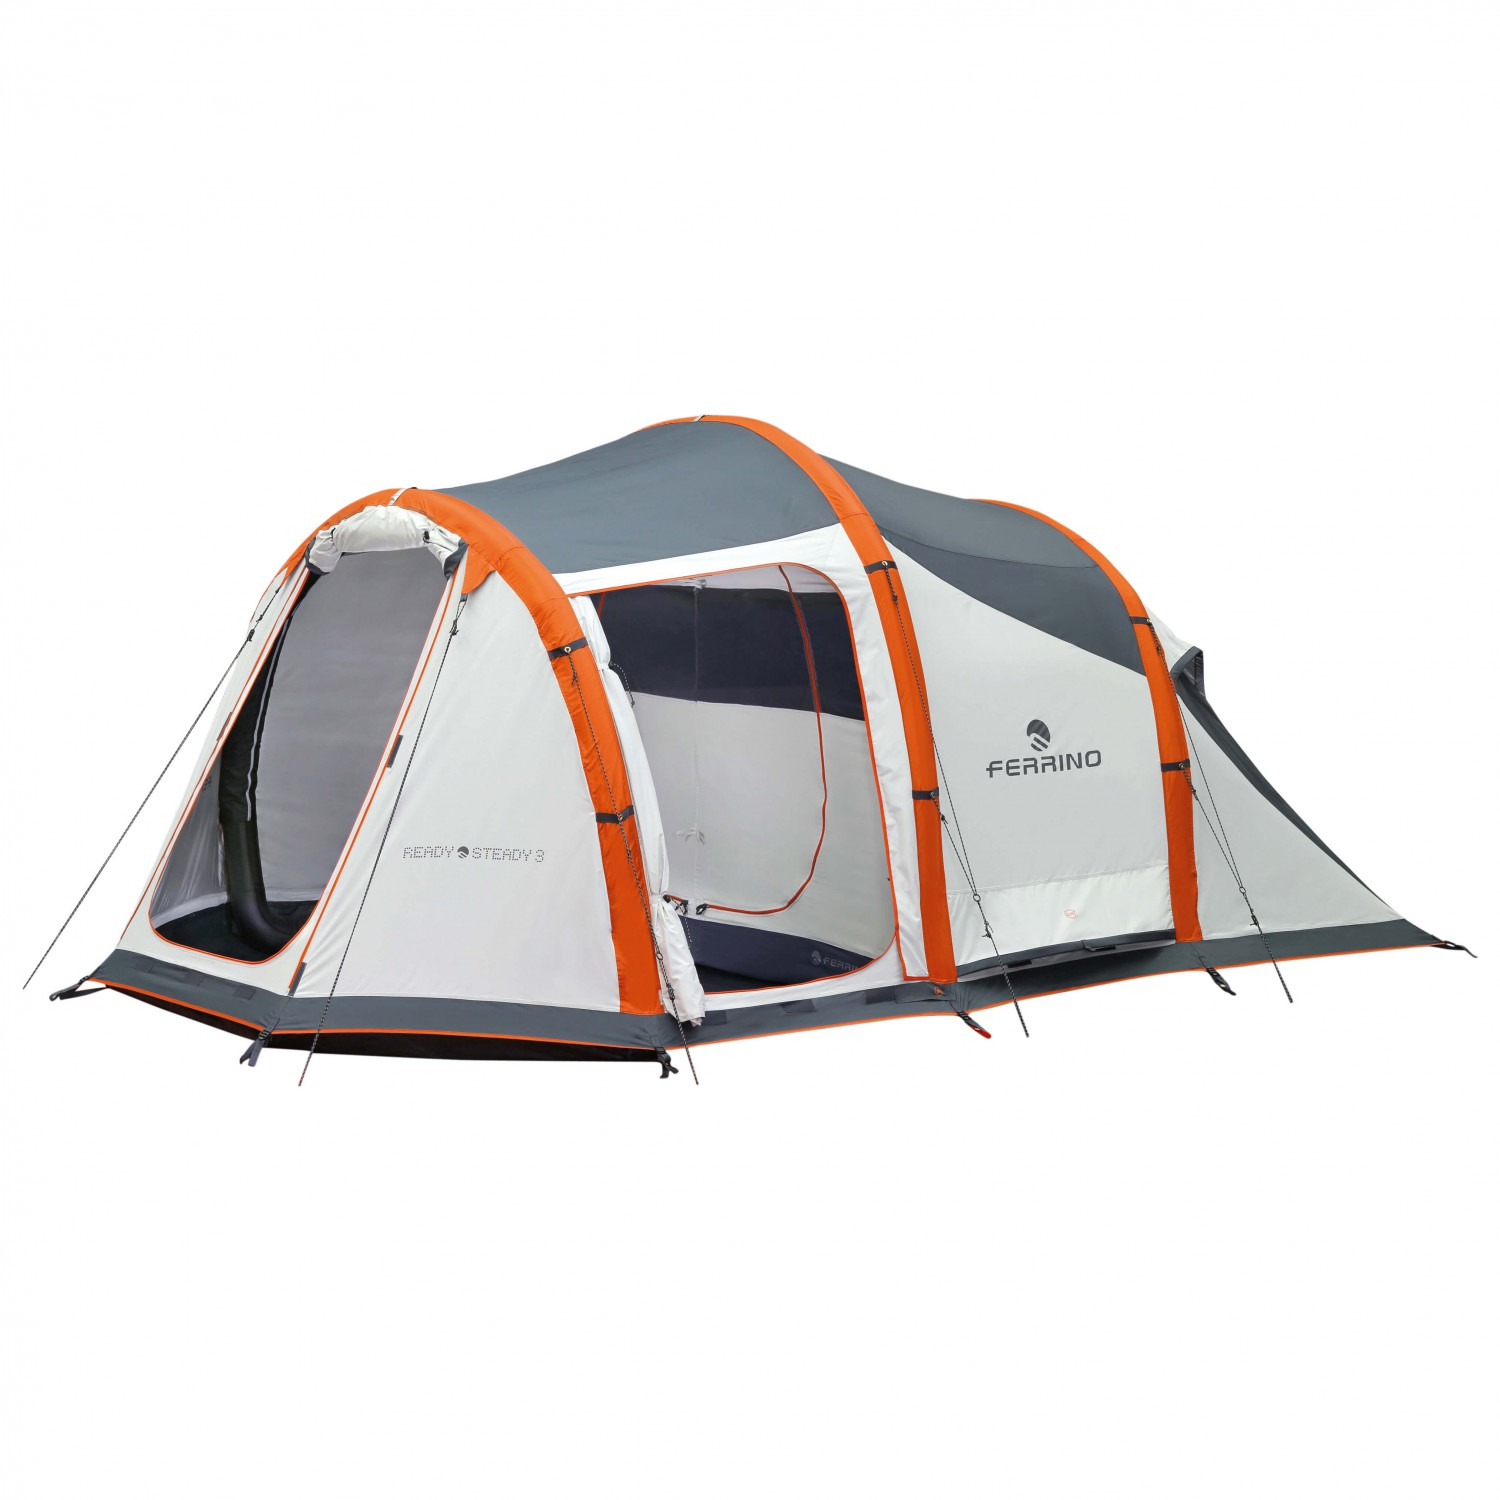 Ferrino - Ready Steady 3 - 3 man tent ...  sc 1 st  Alpinetrek & Ferrino Ready Steady 3 - 3 Man Tent | Free UK Delivery ...